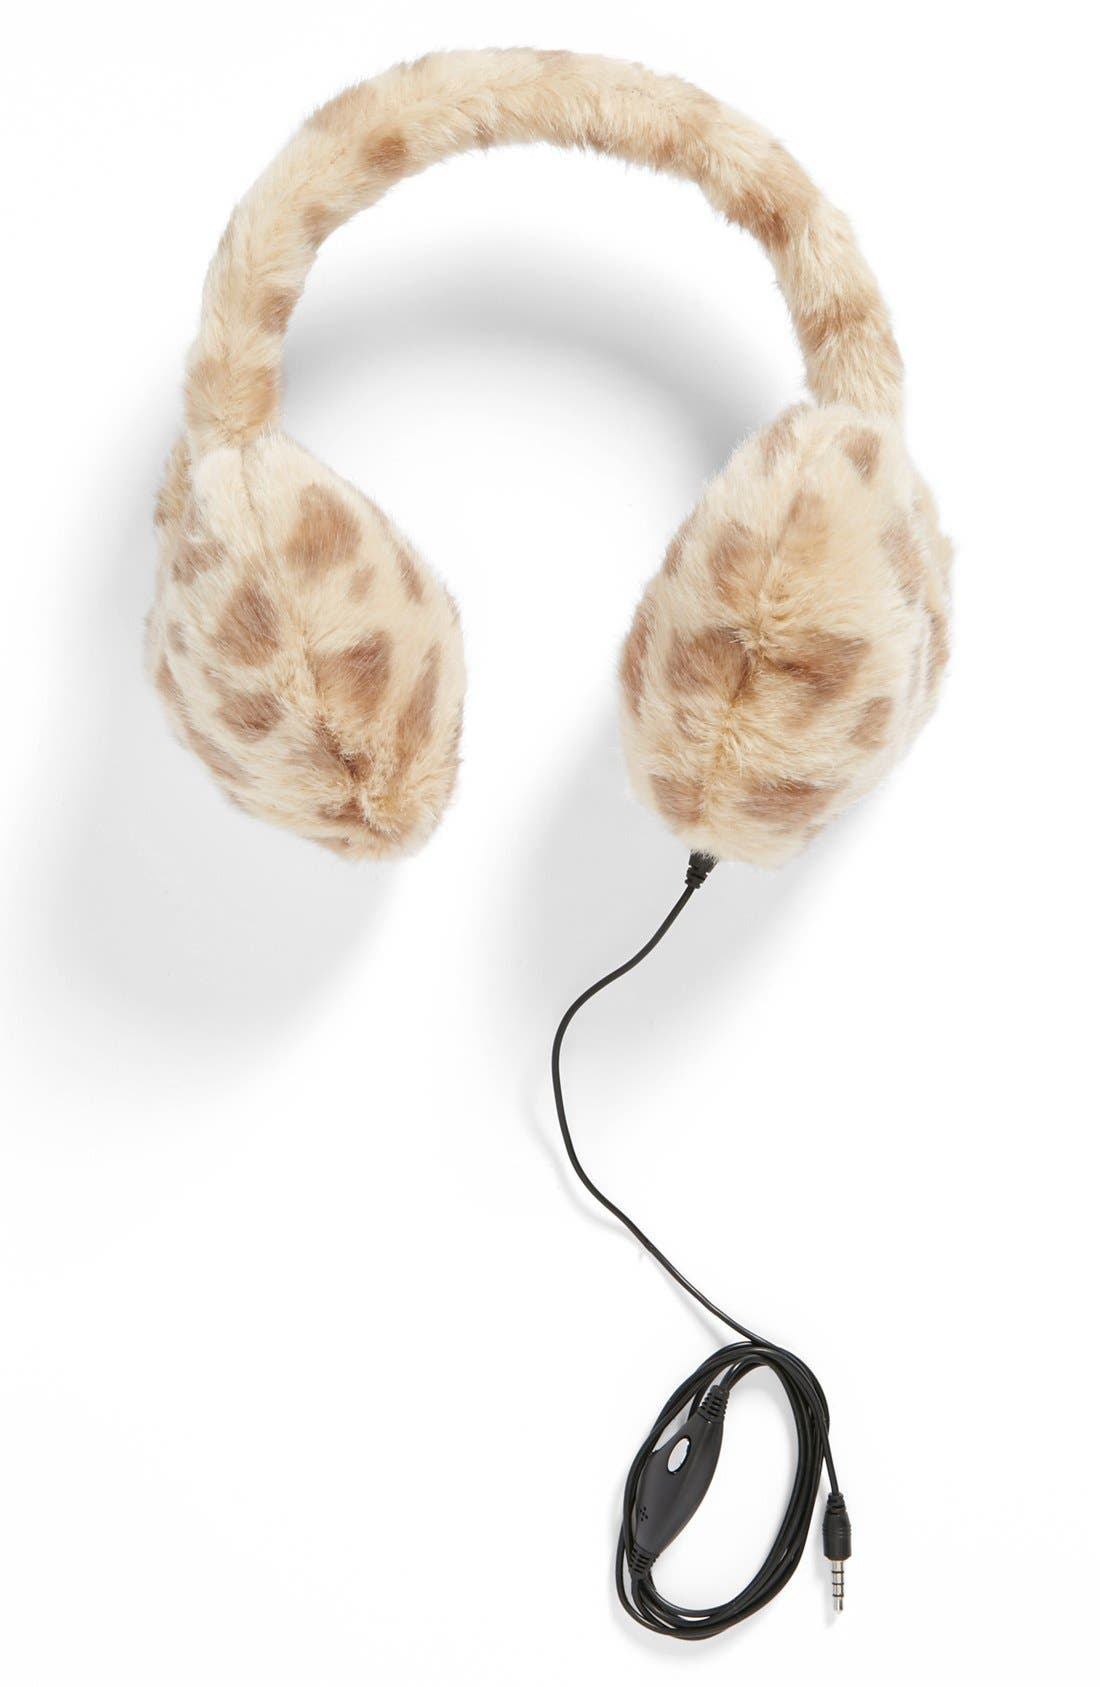 Main Image - The Accessory Collective Leopard Print Earmuff Headphones (Girls)